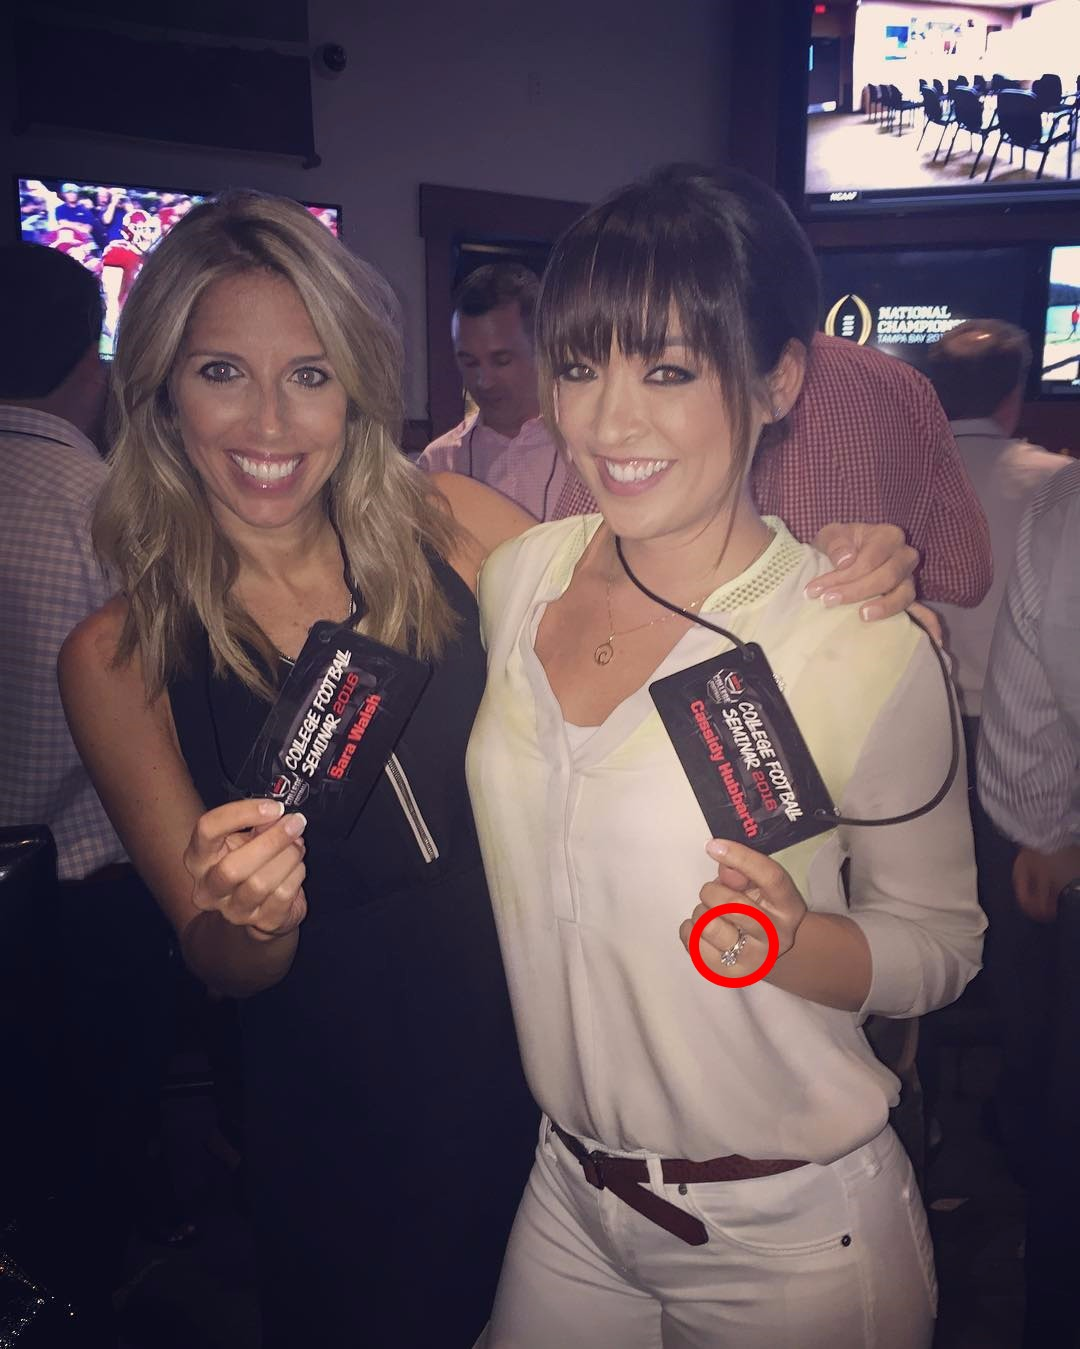 Cassidy Hubbarth standing alongside Sara Walsh. A wedding ring on her left hand is visible.